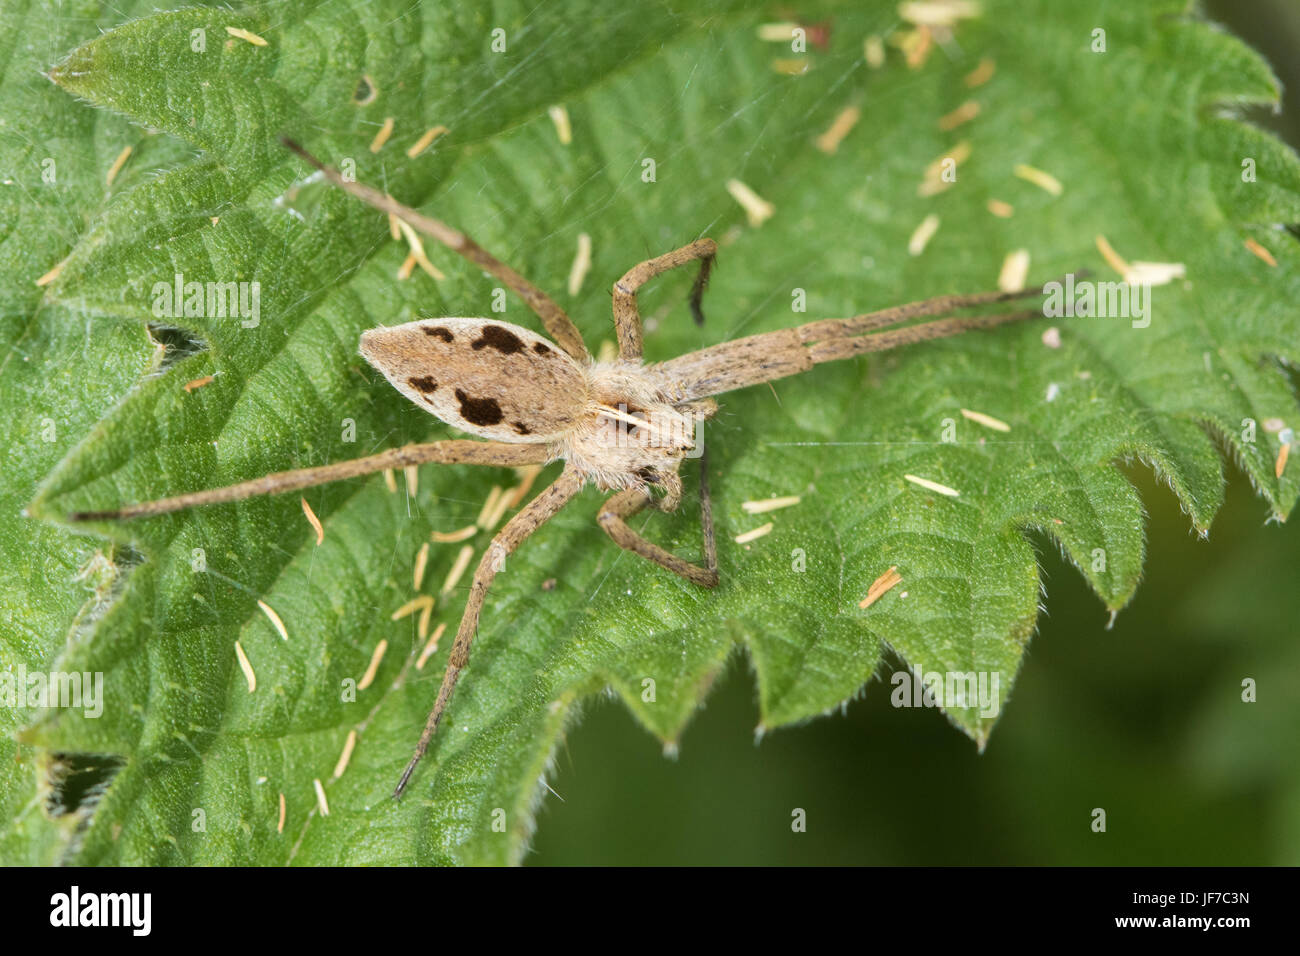 Nursery-web Spider (Pisaura mirabilis) on a Stinging Nettle leaf - Stock Image